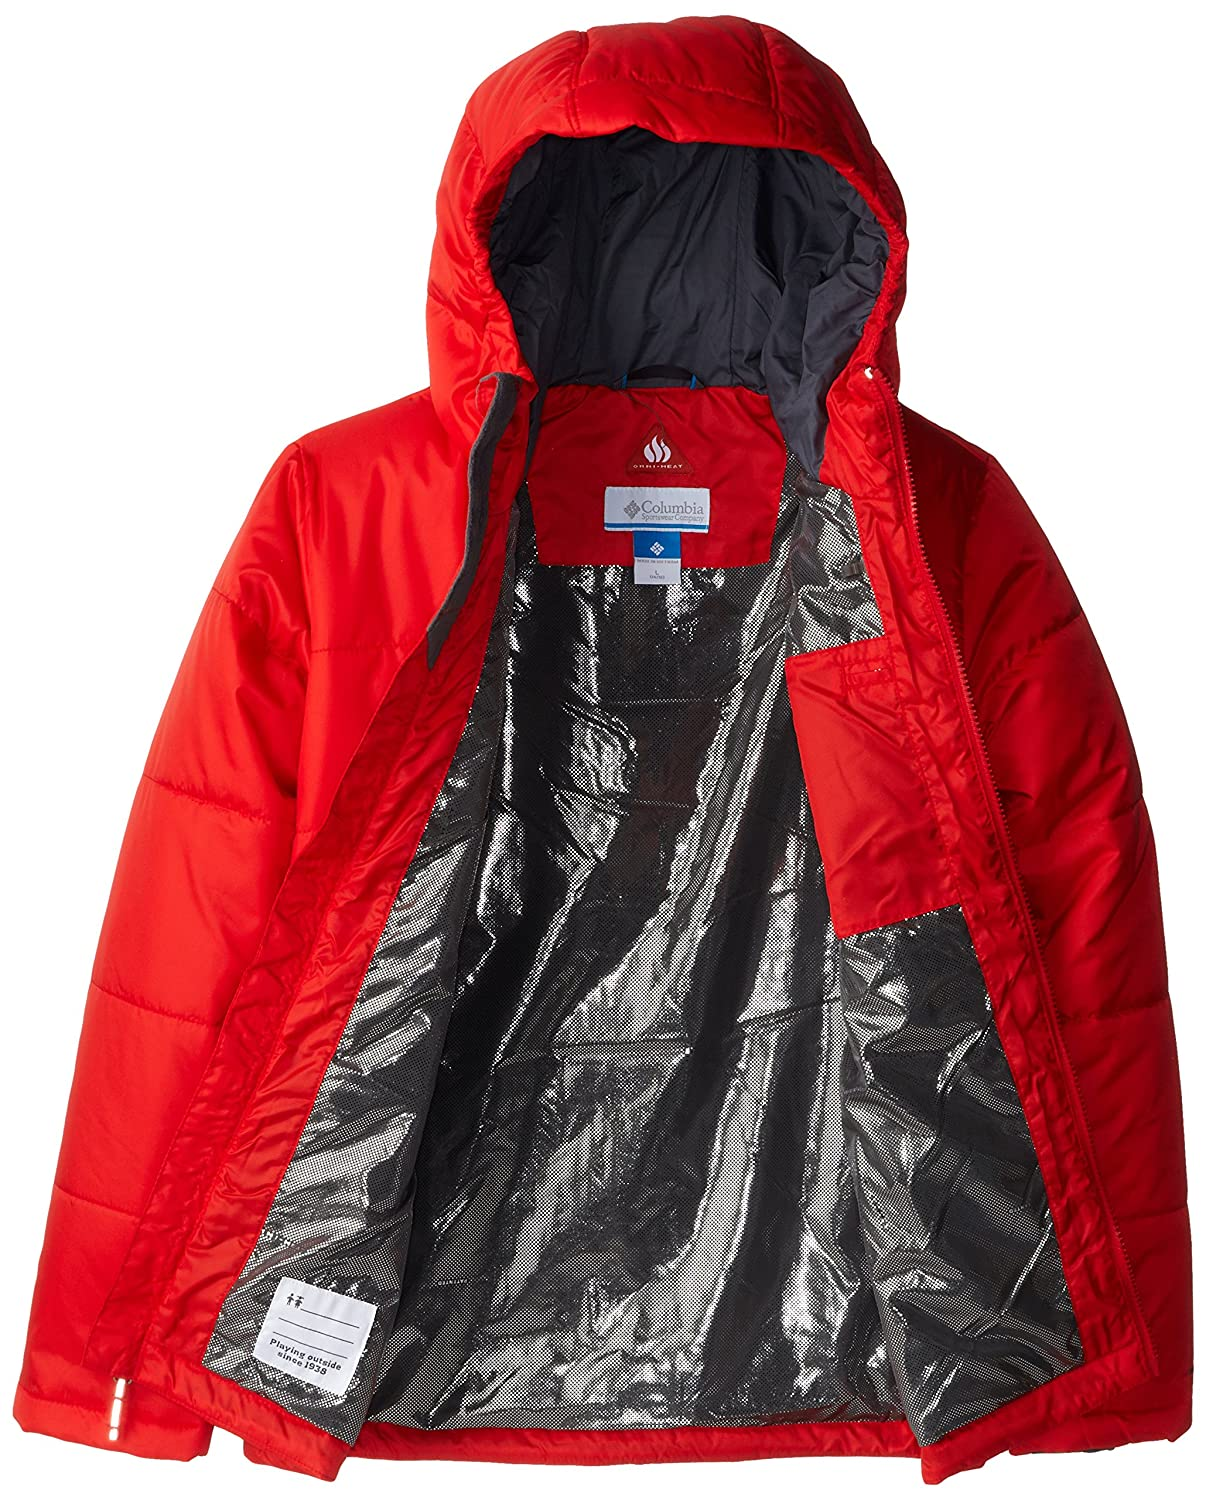 Amazon.com : Columbia Sportswear Boy's Shimmer Me Jacket : Sports ...